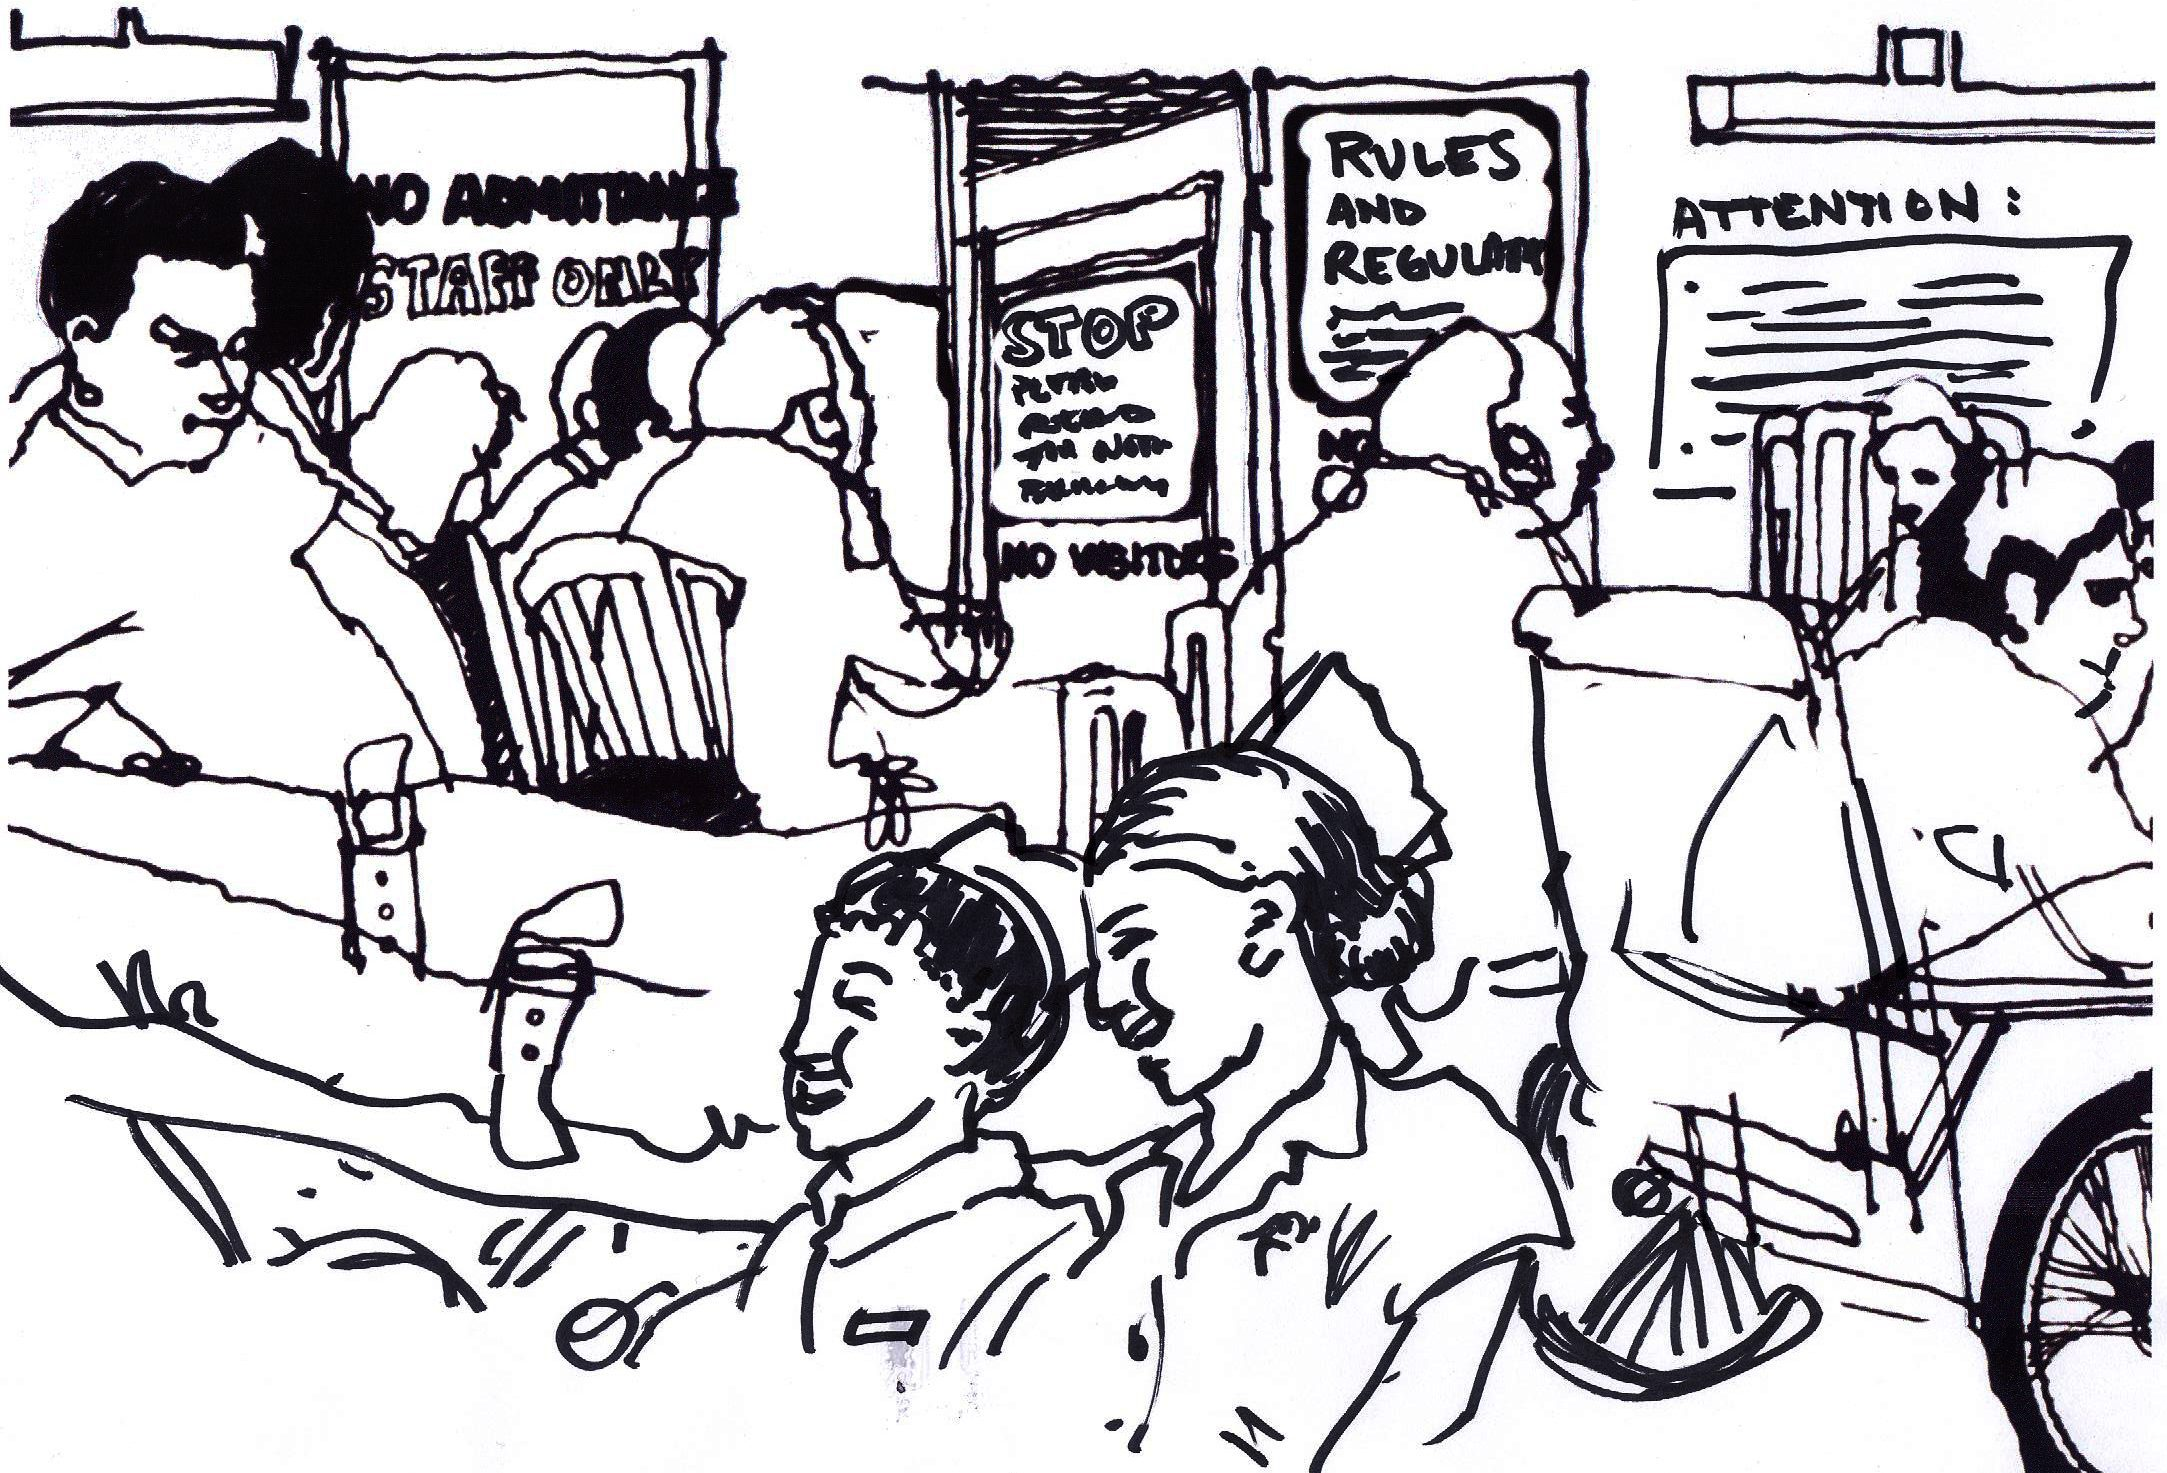 ink sketch of crowded hospital waiting room